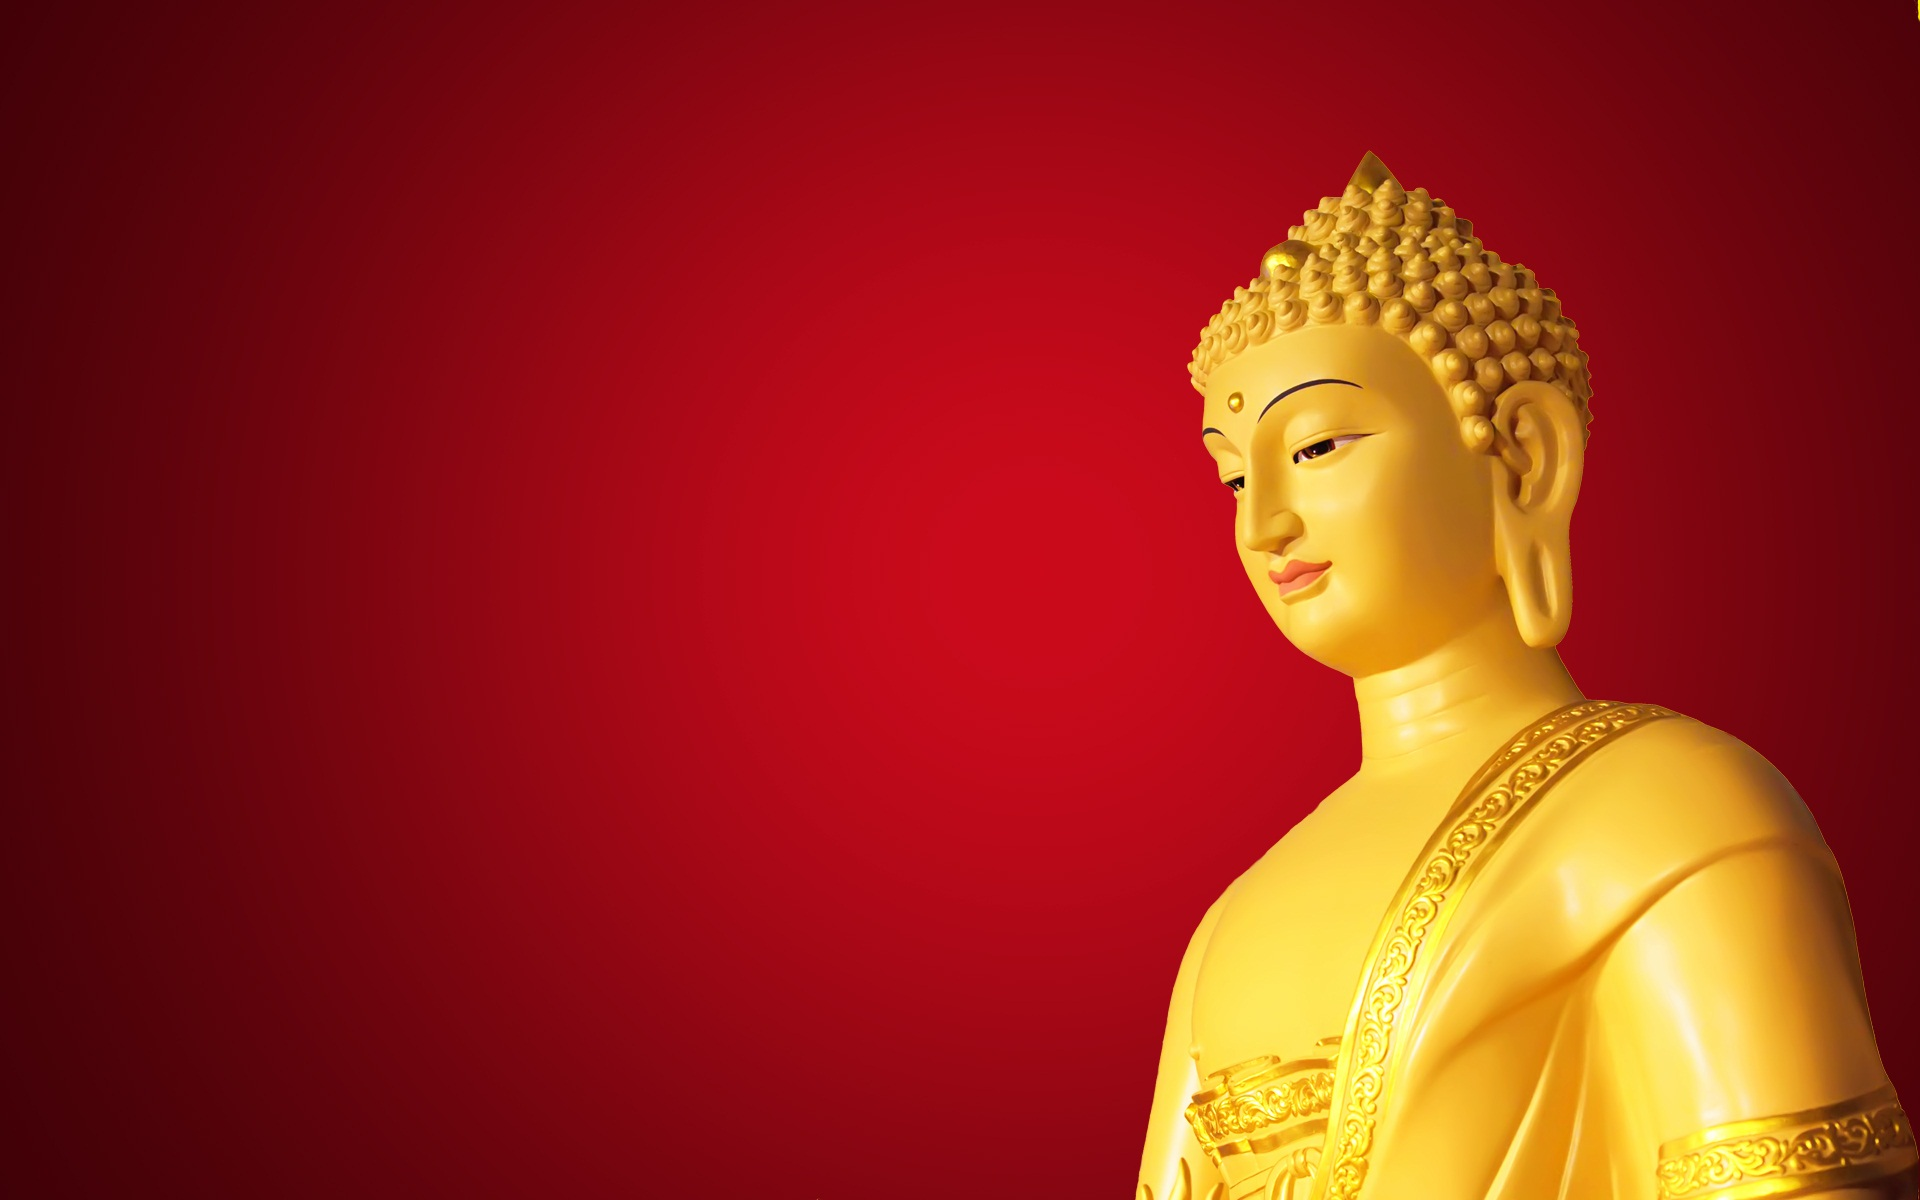 Buddha Wallpaper Hd 1920x1080 - impremedia.net for Beautiful Buddha Wallpaper  174mzq